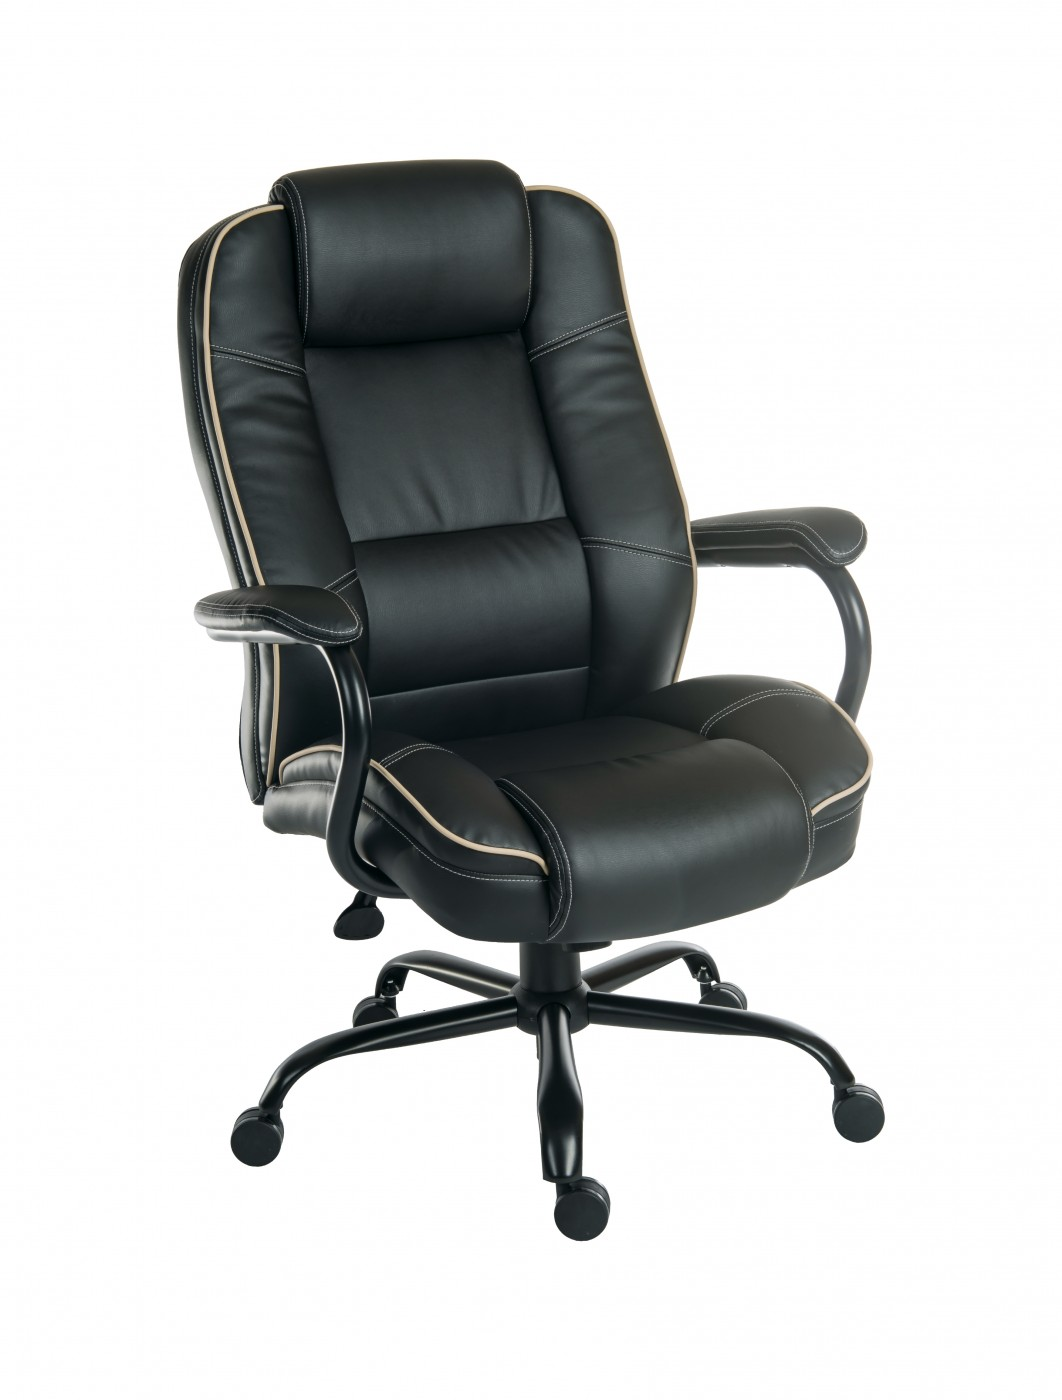 Executive Chairs Teknik Goliath Duo Heavy Duty Office Chair 6925blk 121